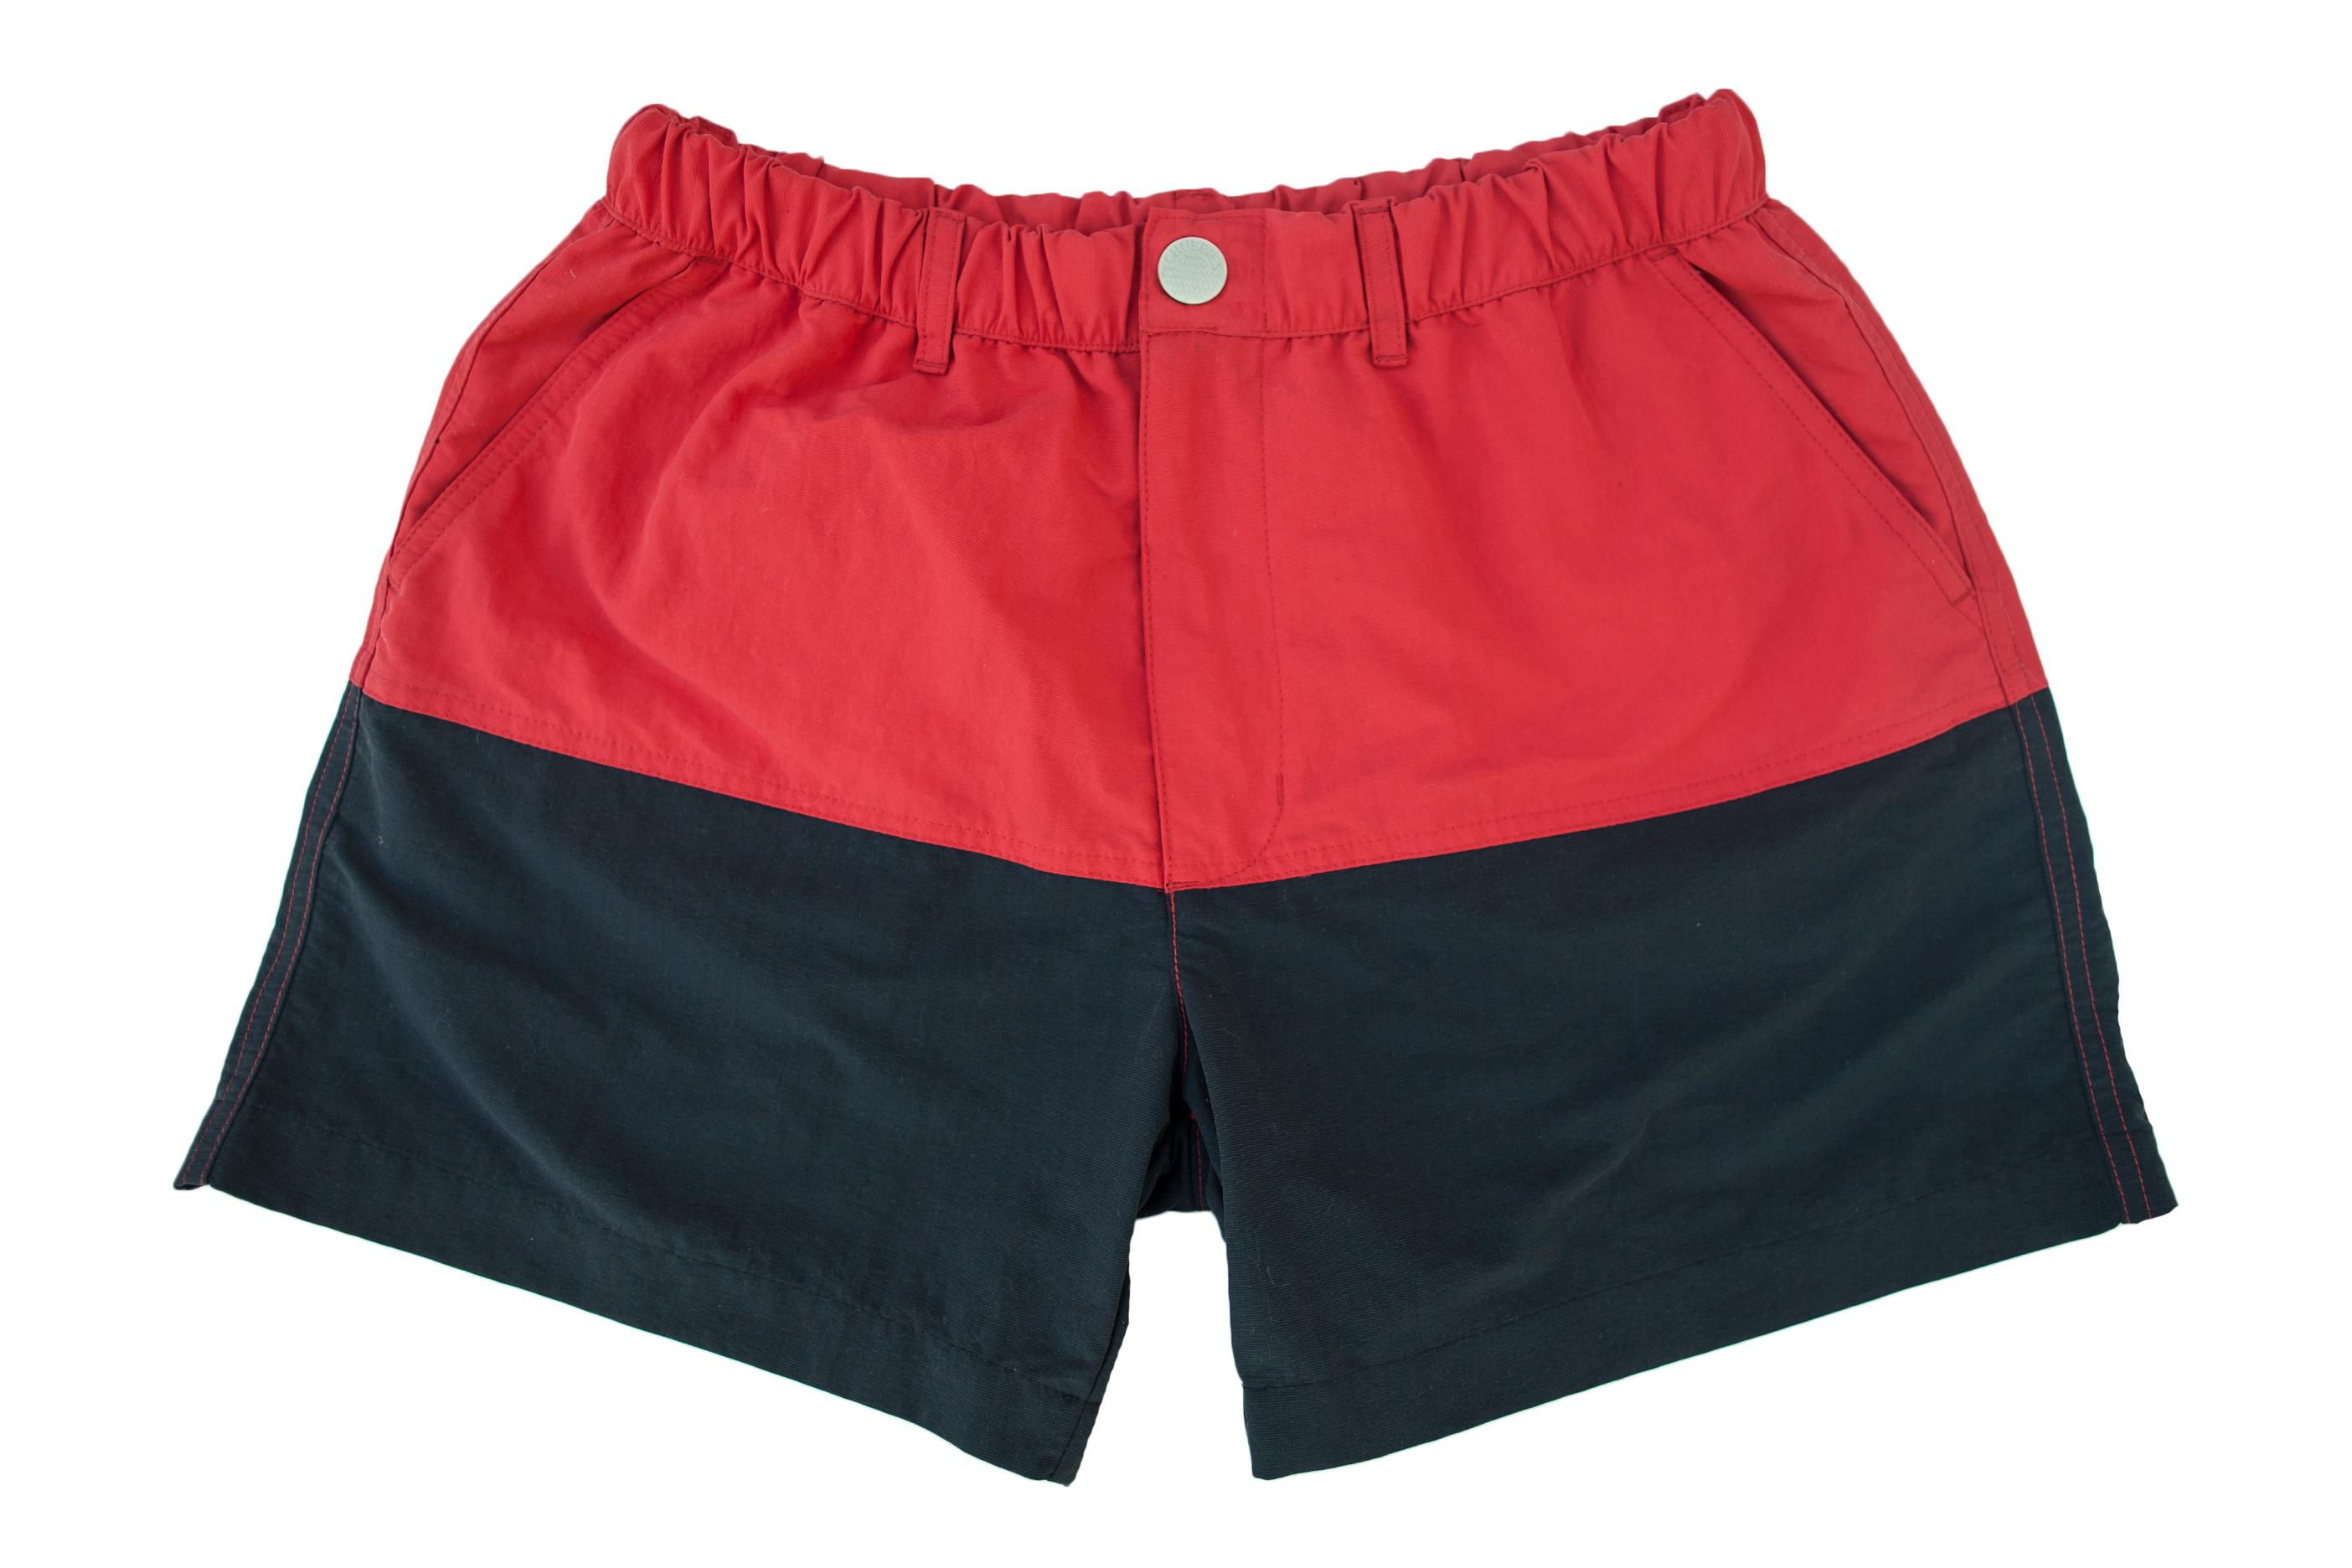 Chubbies shorts is on a mission to own the men s shorts market and define the weekend lifestyle